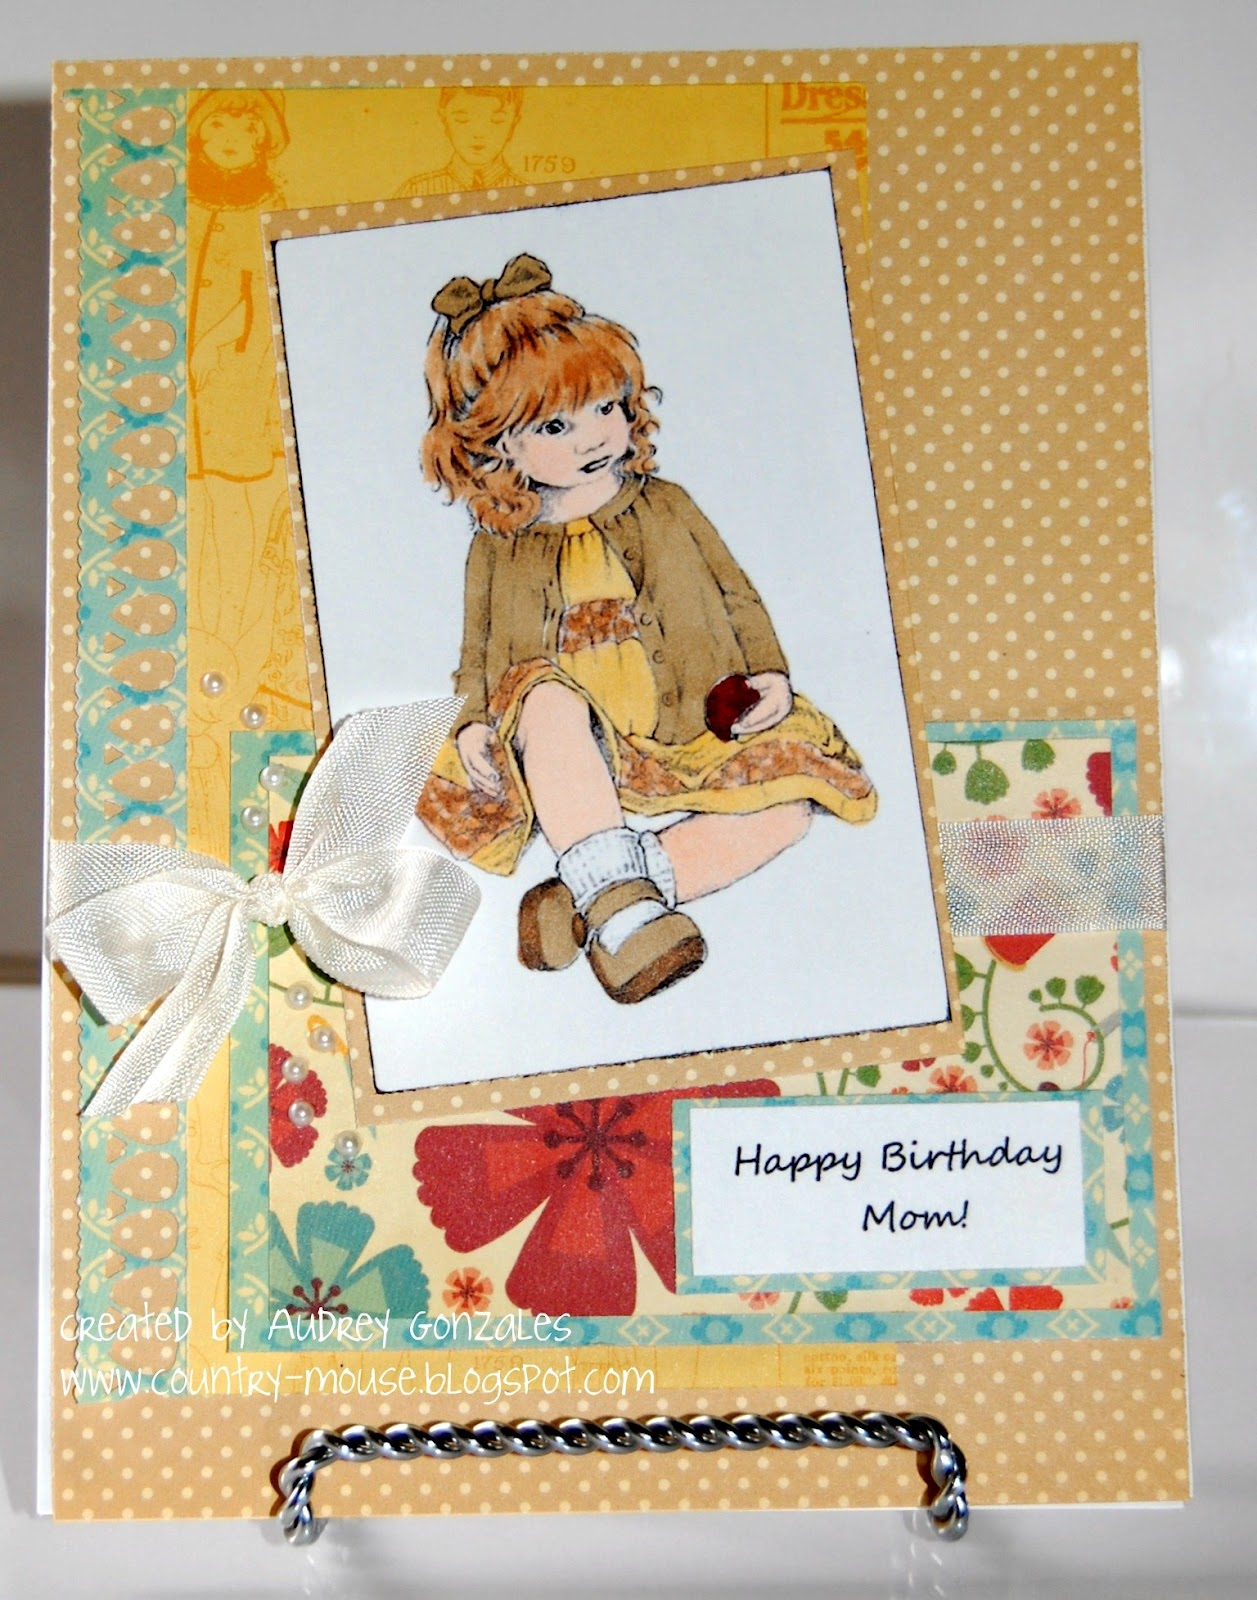 I Hope My Mom Enjoyed Her Day Also She Cake And Handmade Card Loves The Vintage Look So Made A Especially For